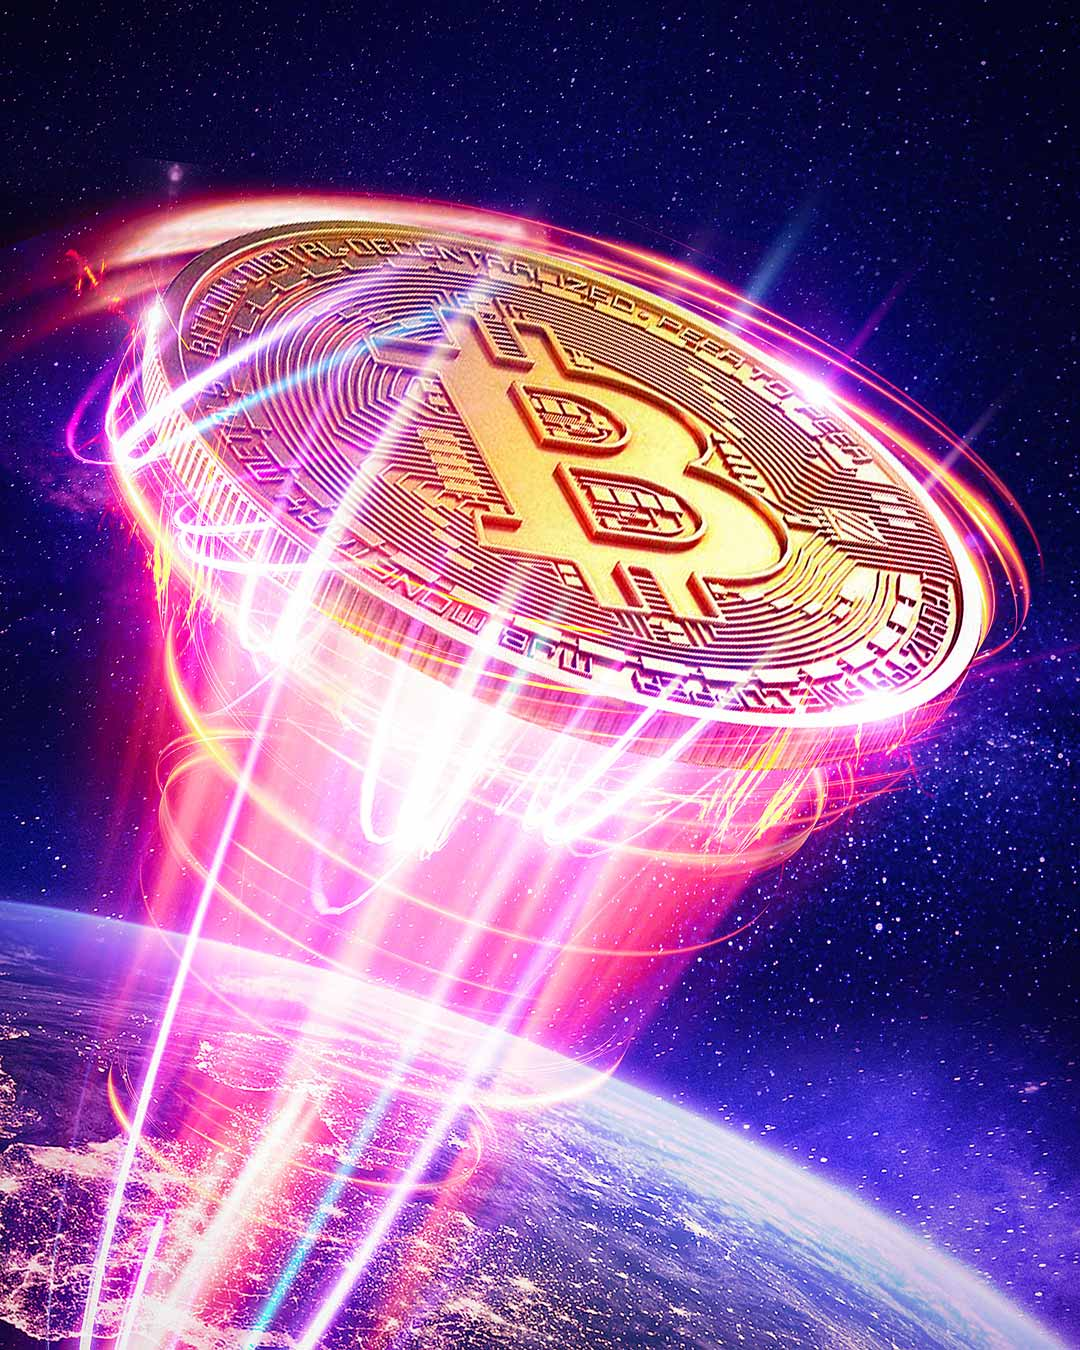 Bitcoin going to the moon